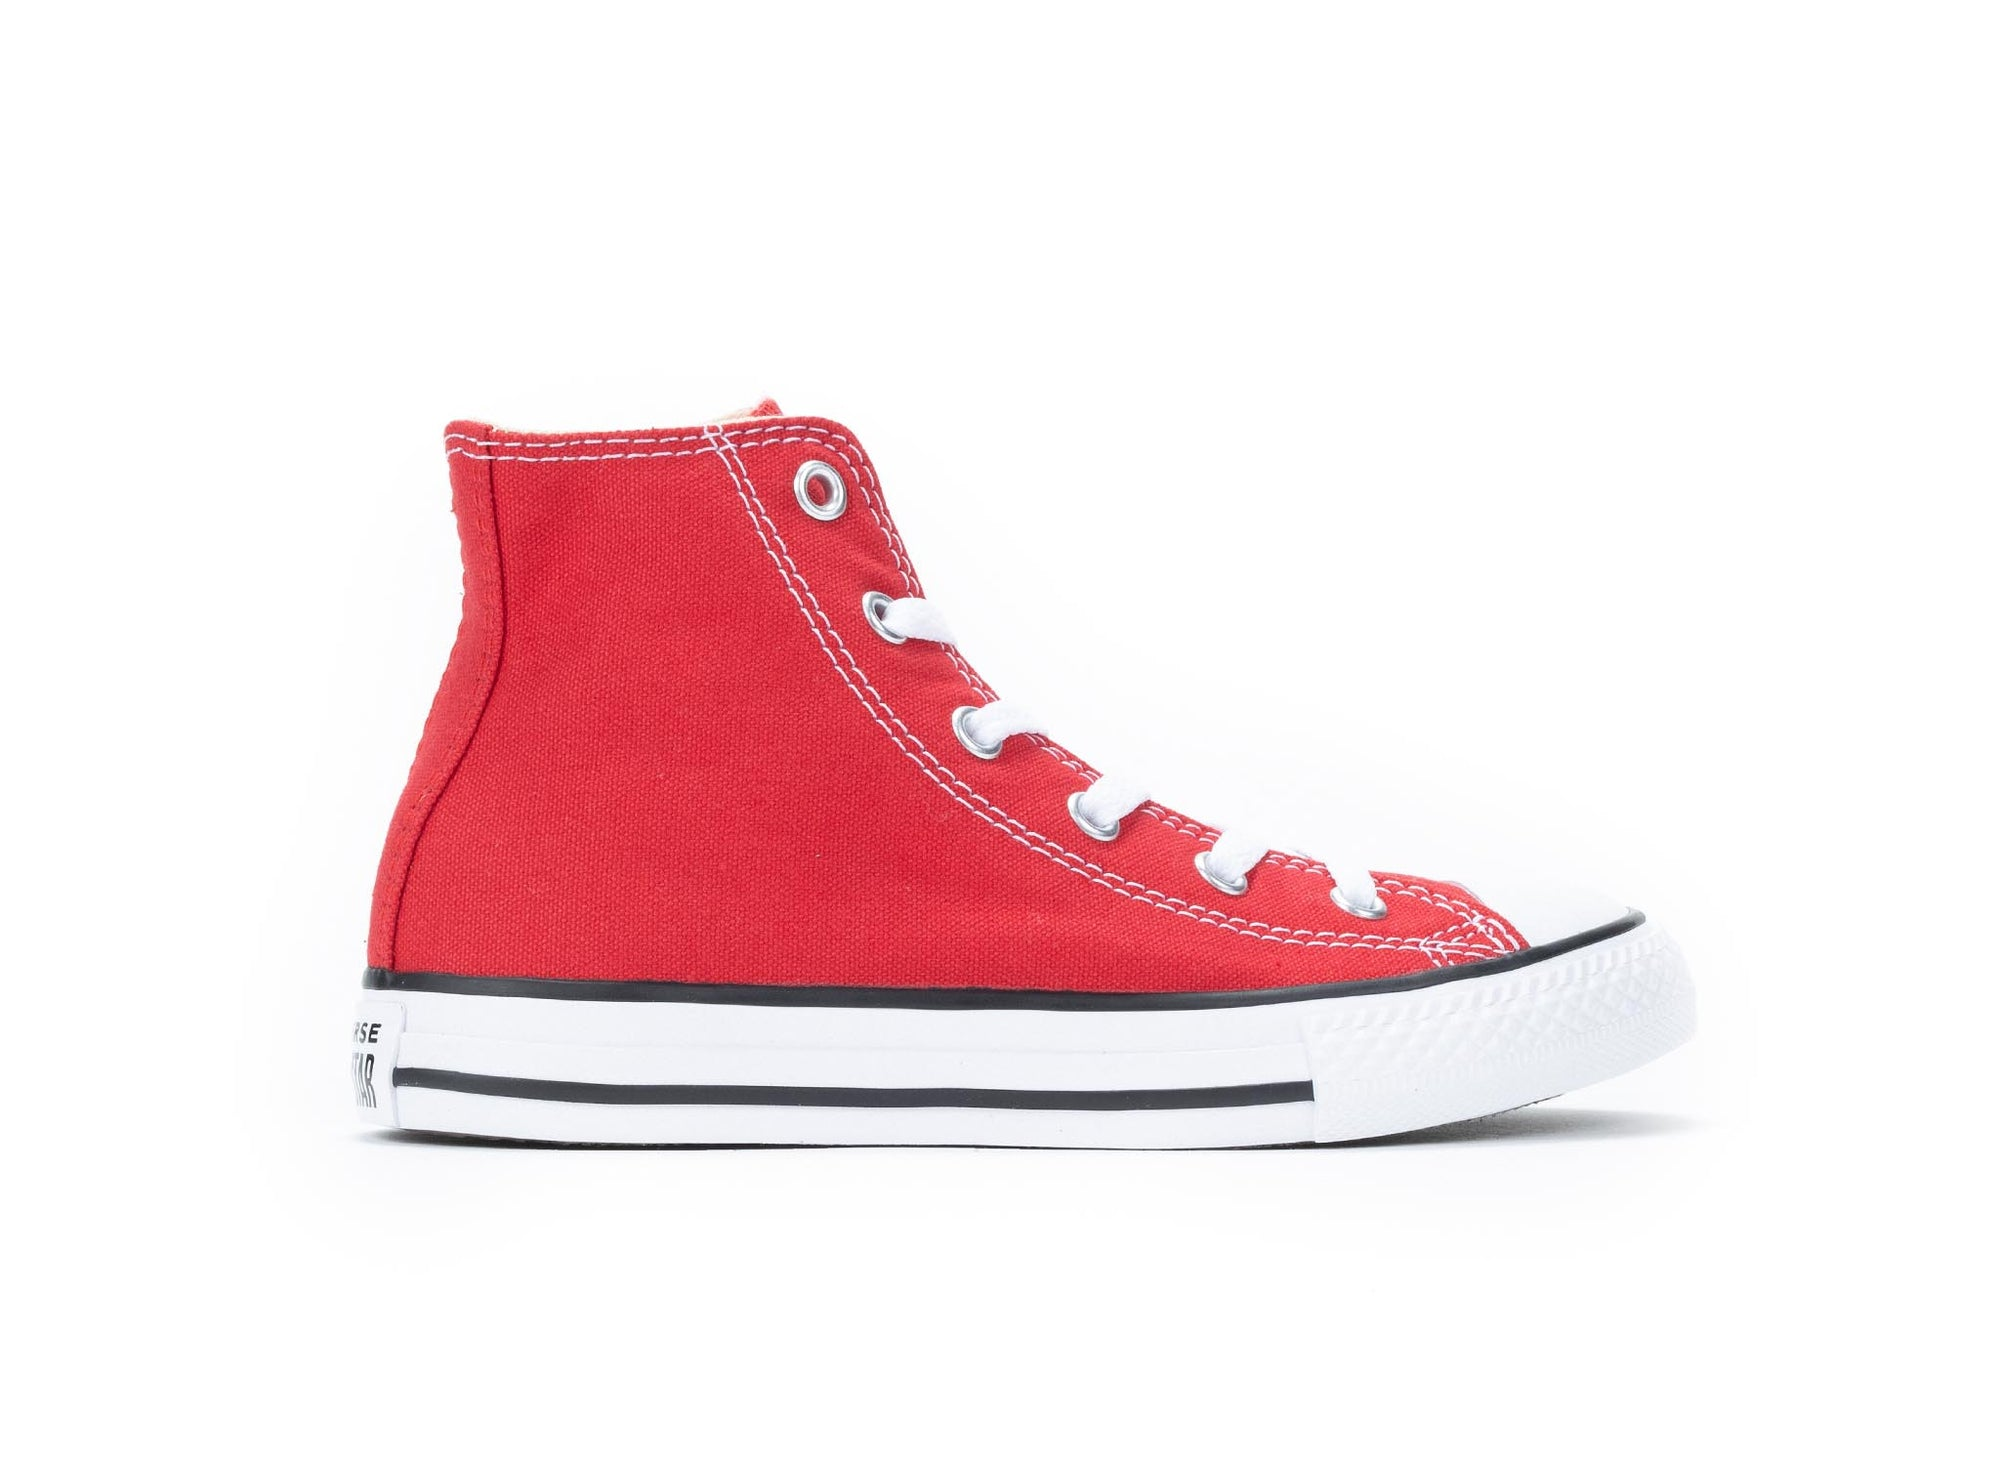 CONVERSE Allstar hi youth kids